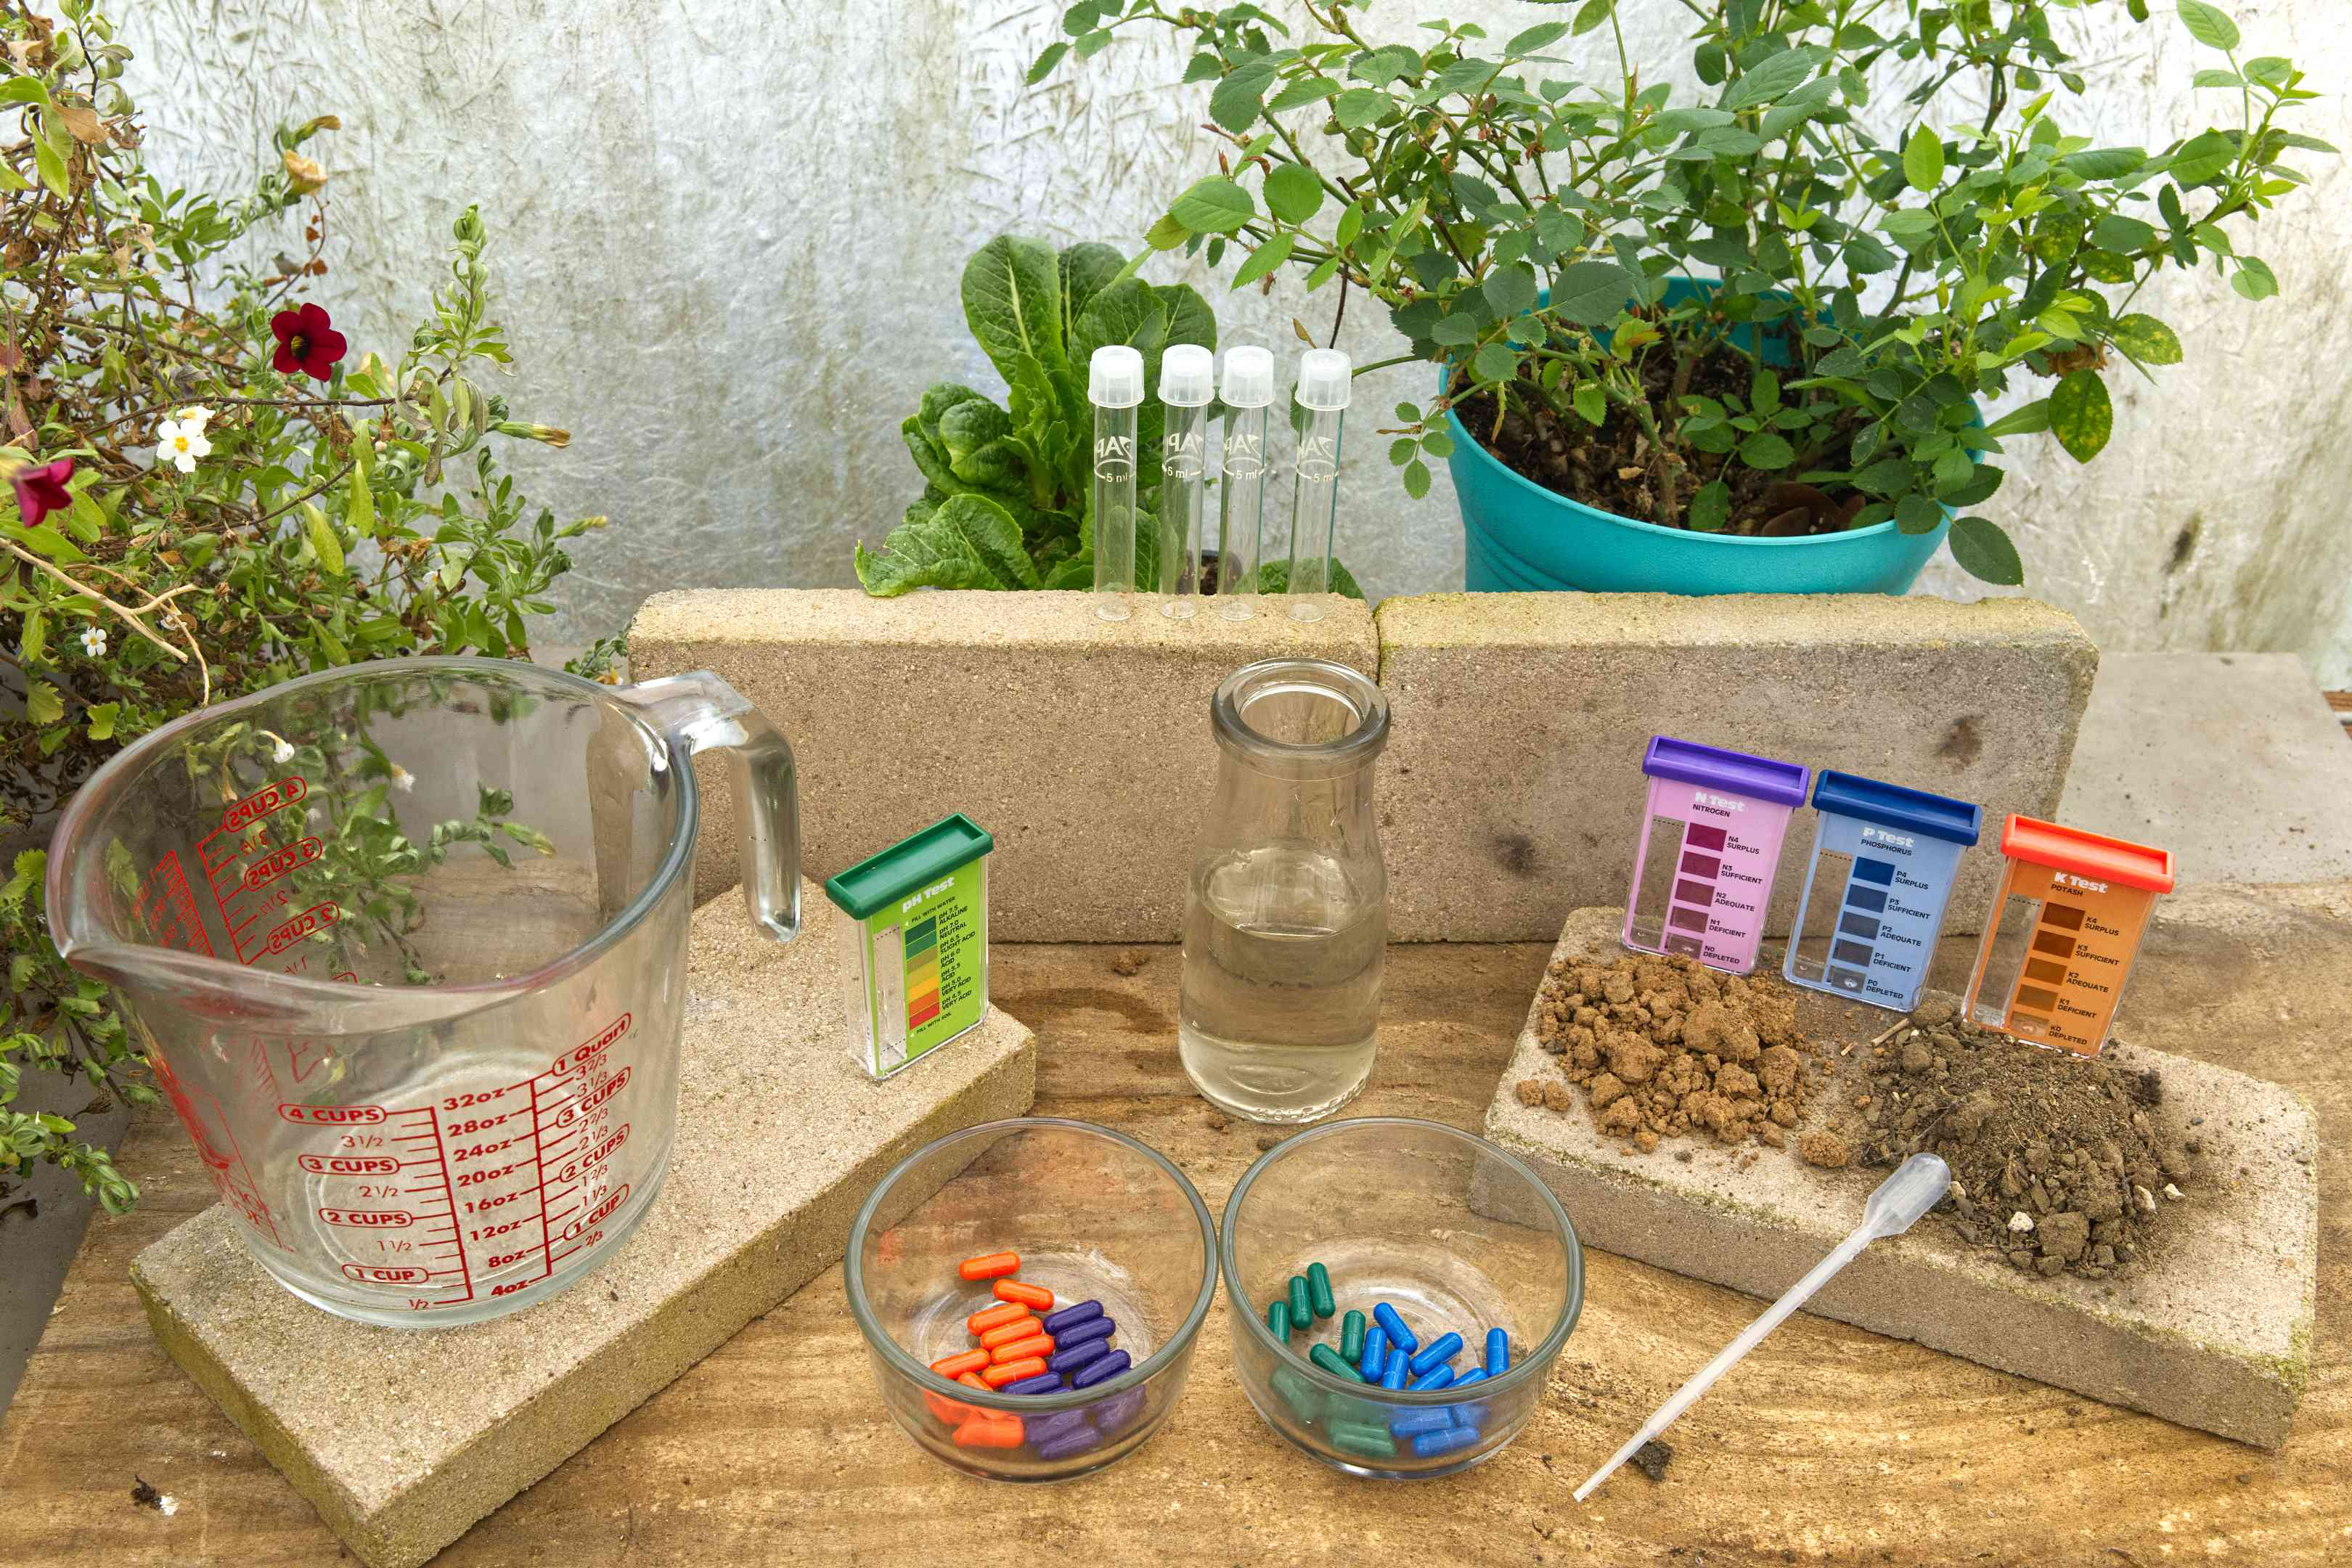 display of DIY soil kit on cement planters with various testing solutions and containers